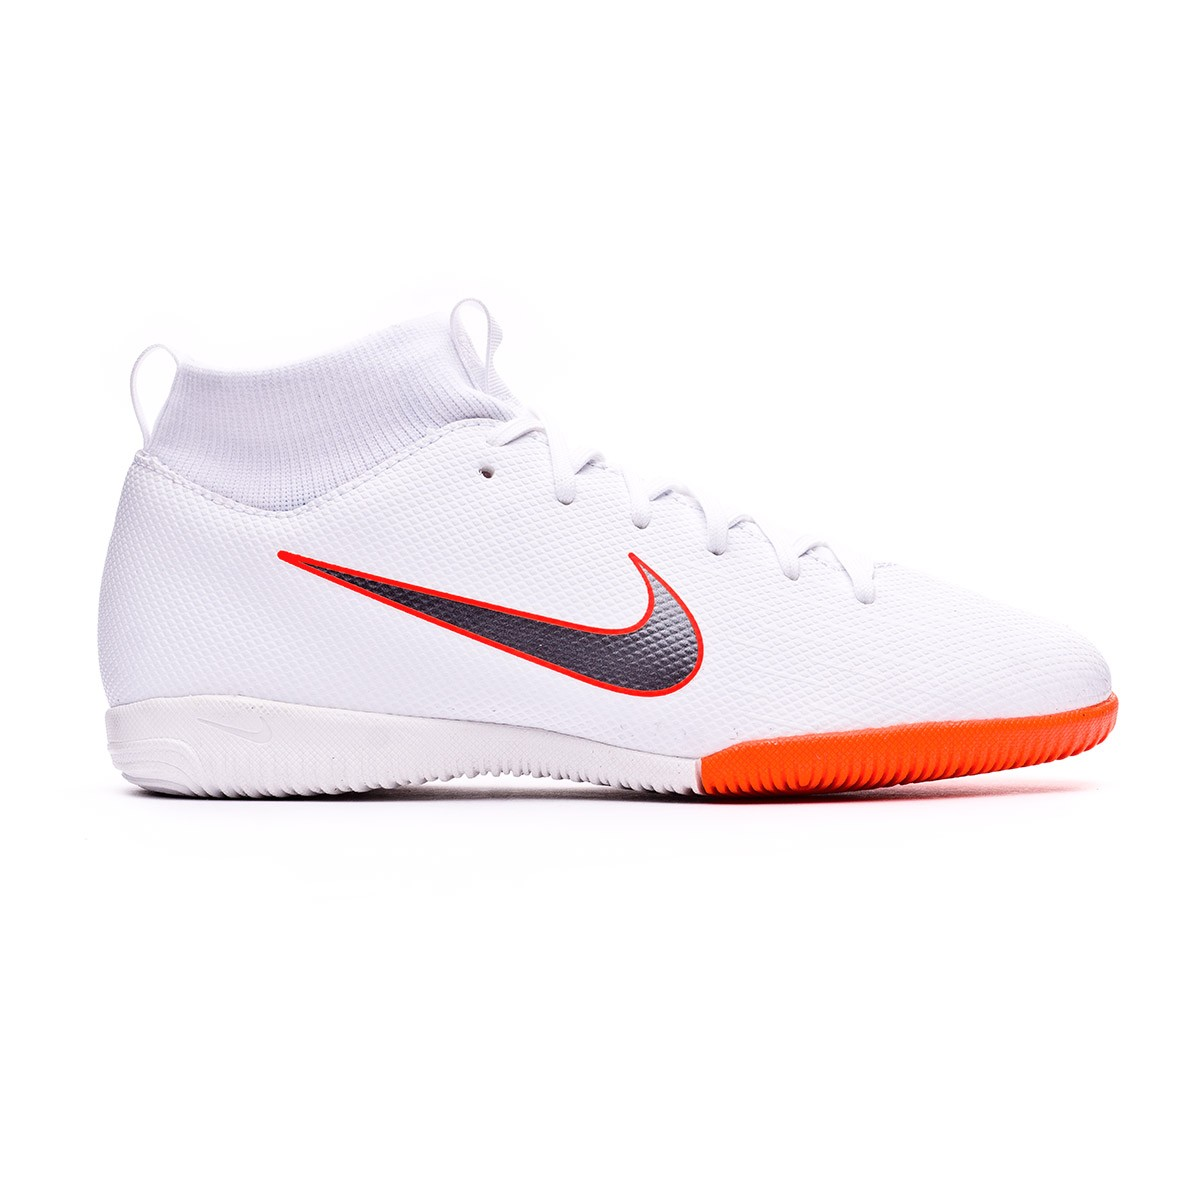 nike store outlet san vicente, Nike SUPERFLYX 6 CLUB IC